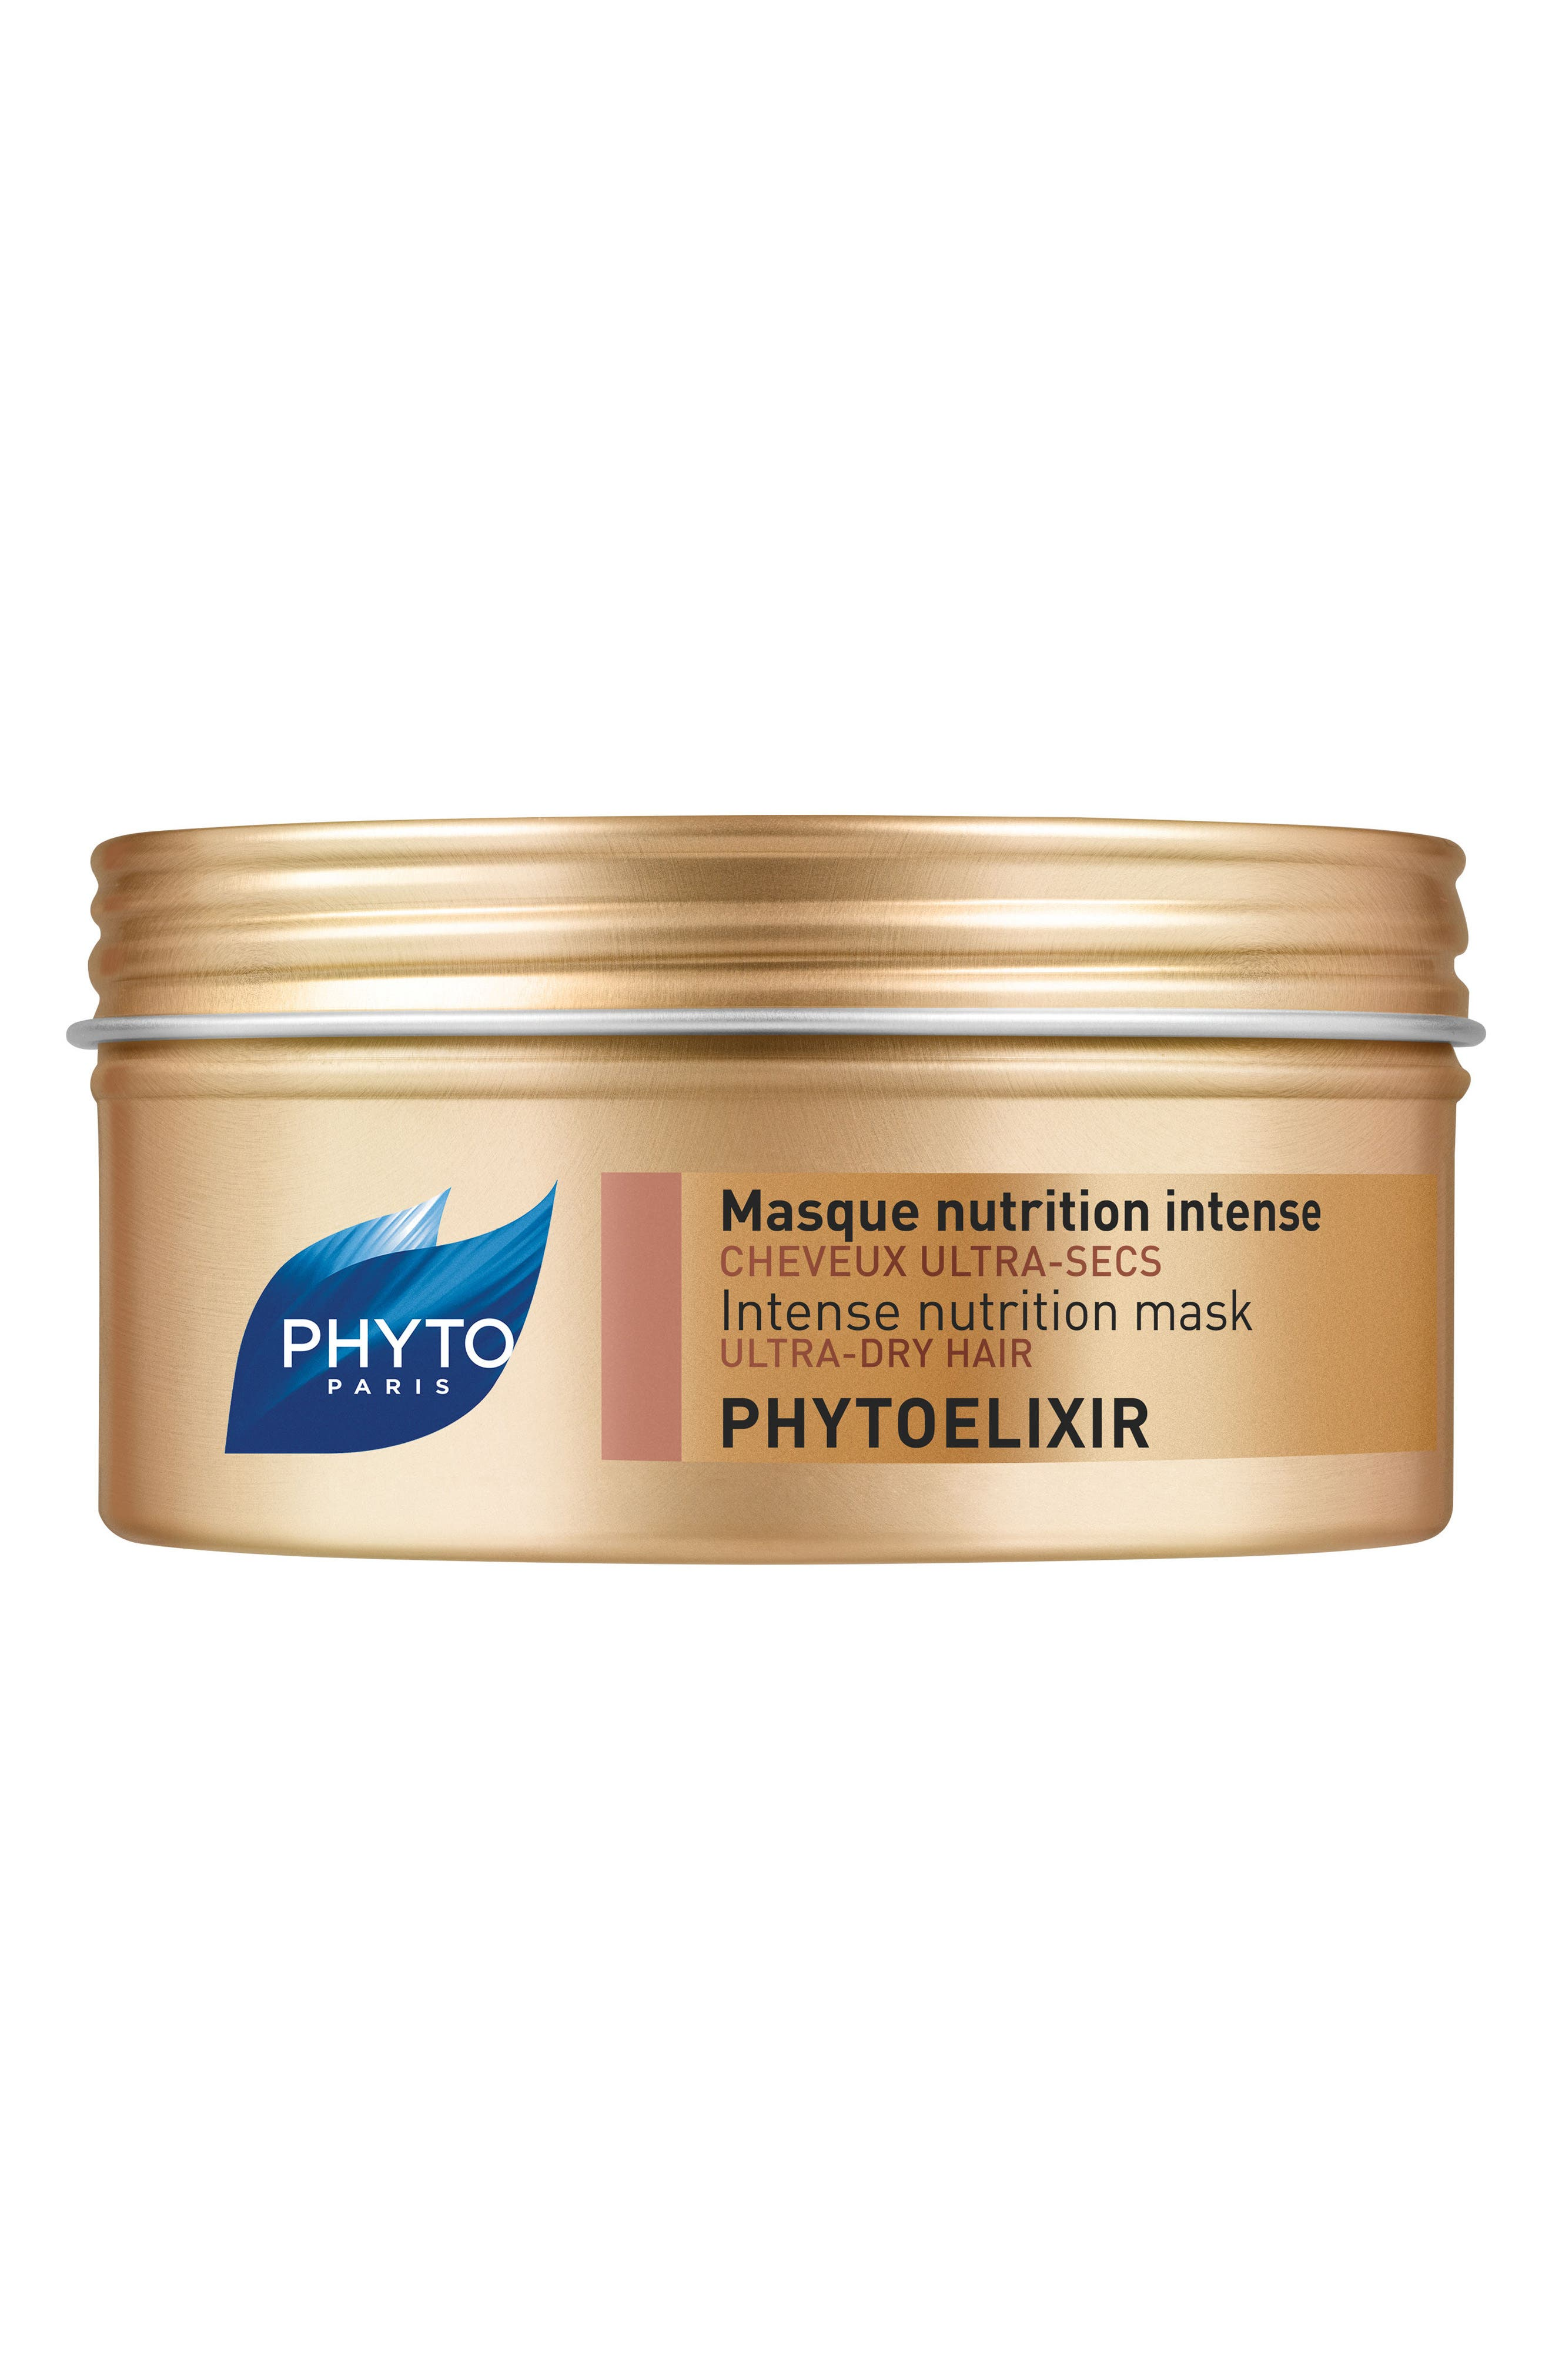 Phytoelixir Intense Nutrition Mask,                         Main,                         color, NO COLOR